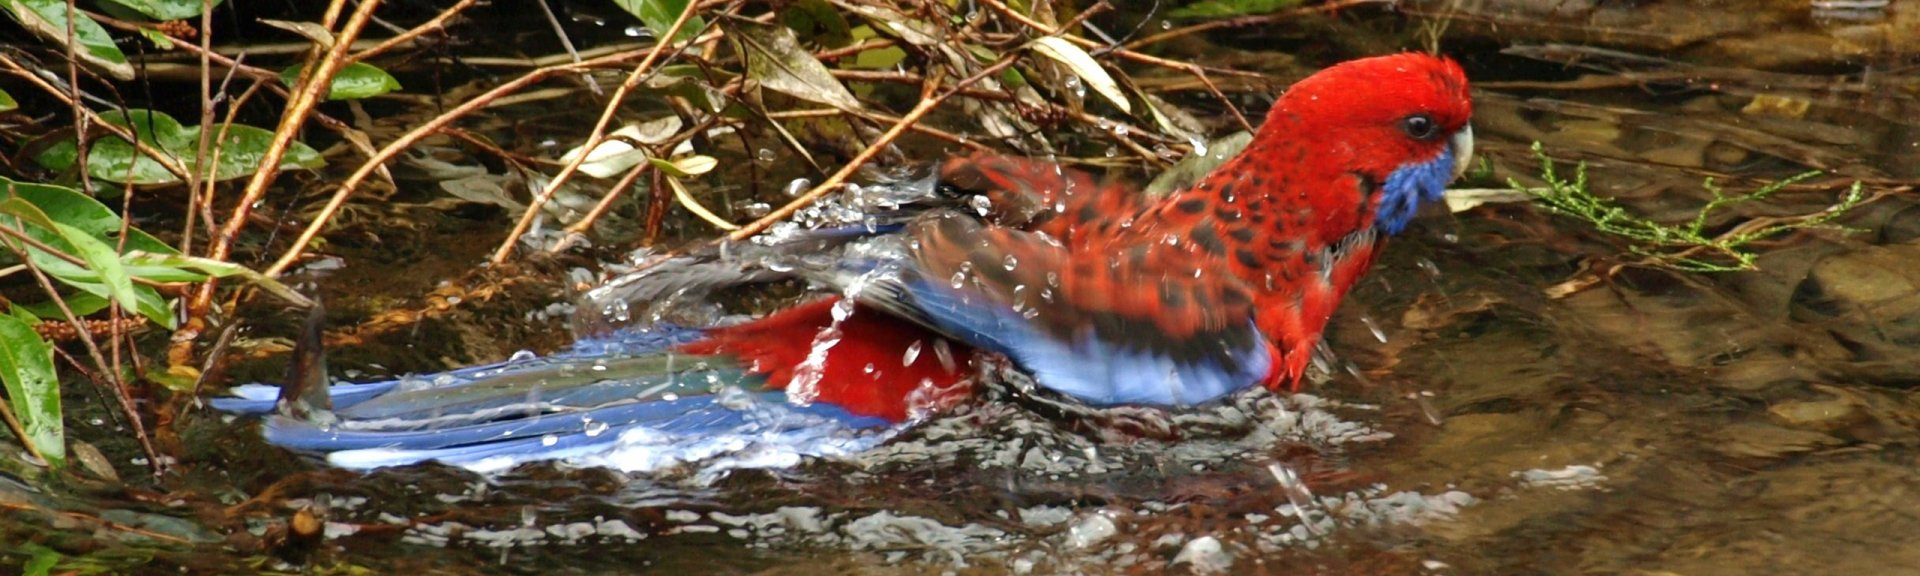 A rosella taking a bath in the Gardens